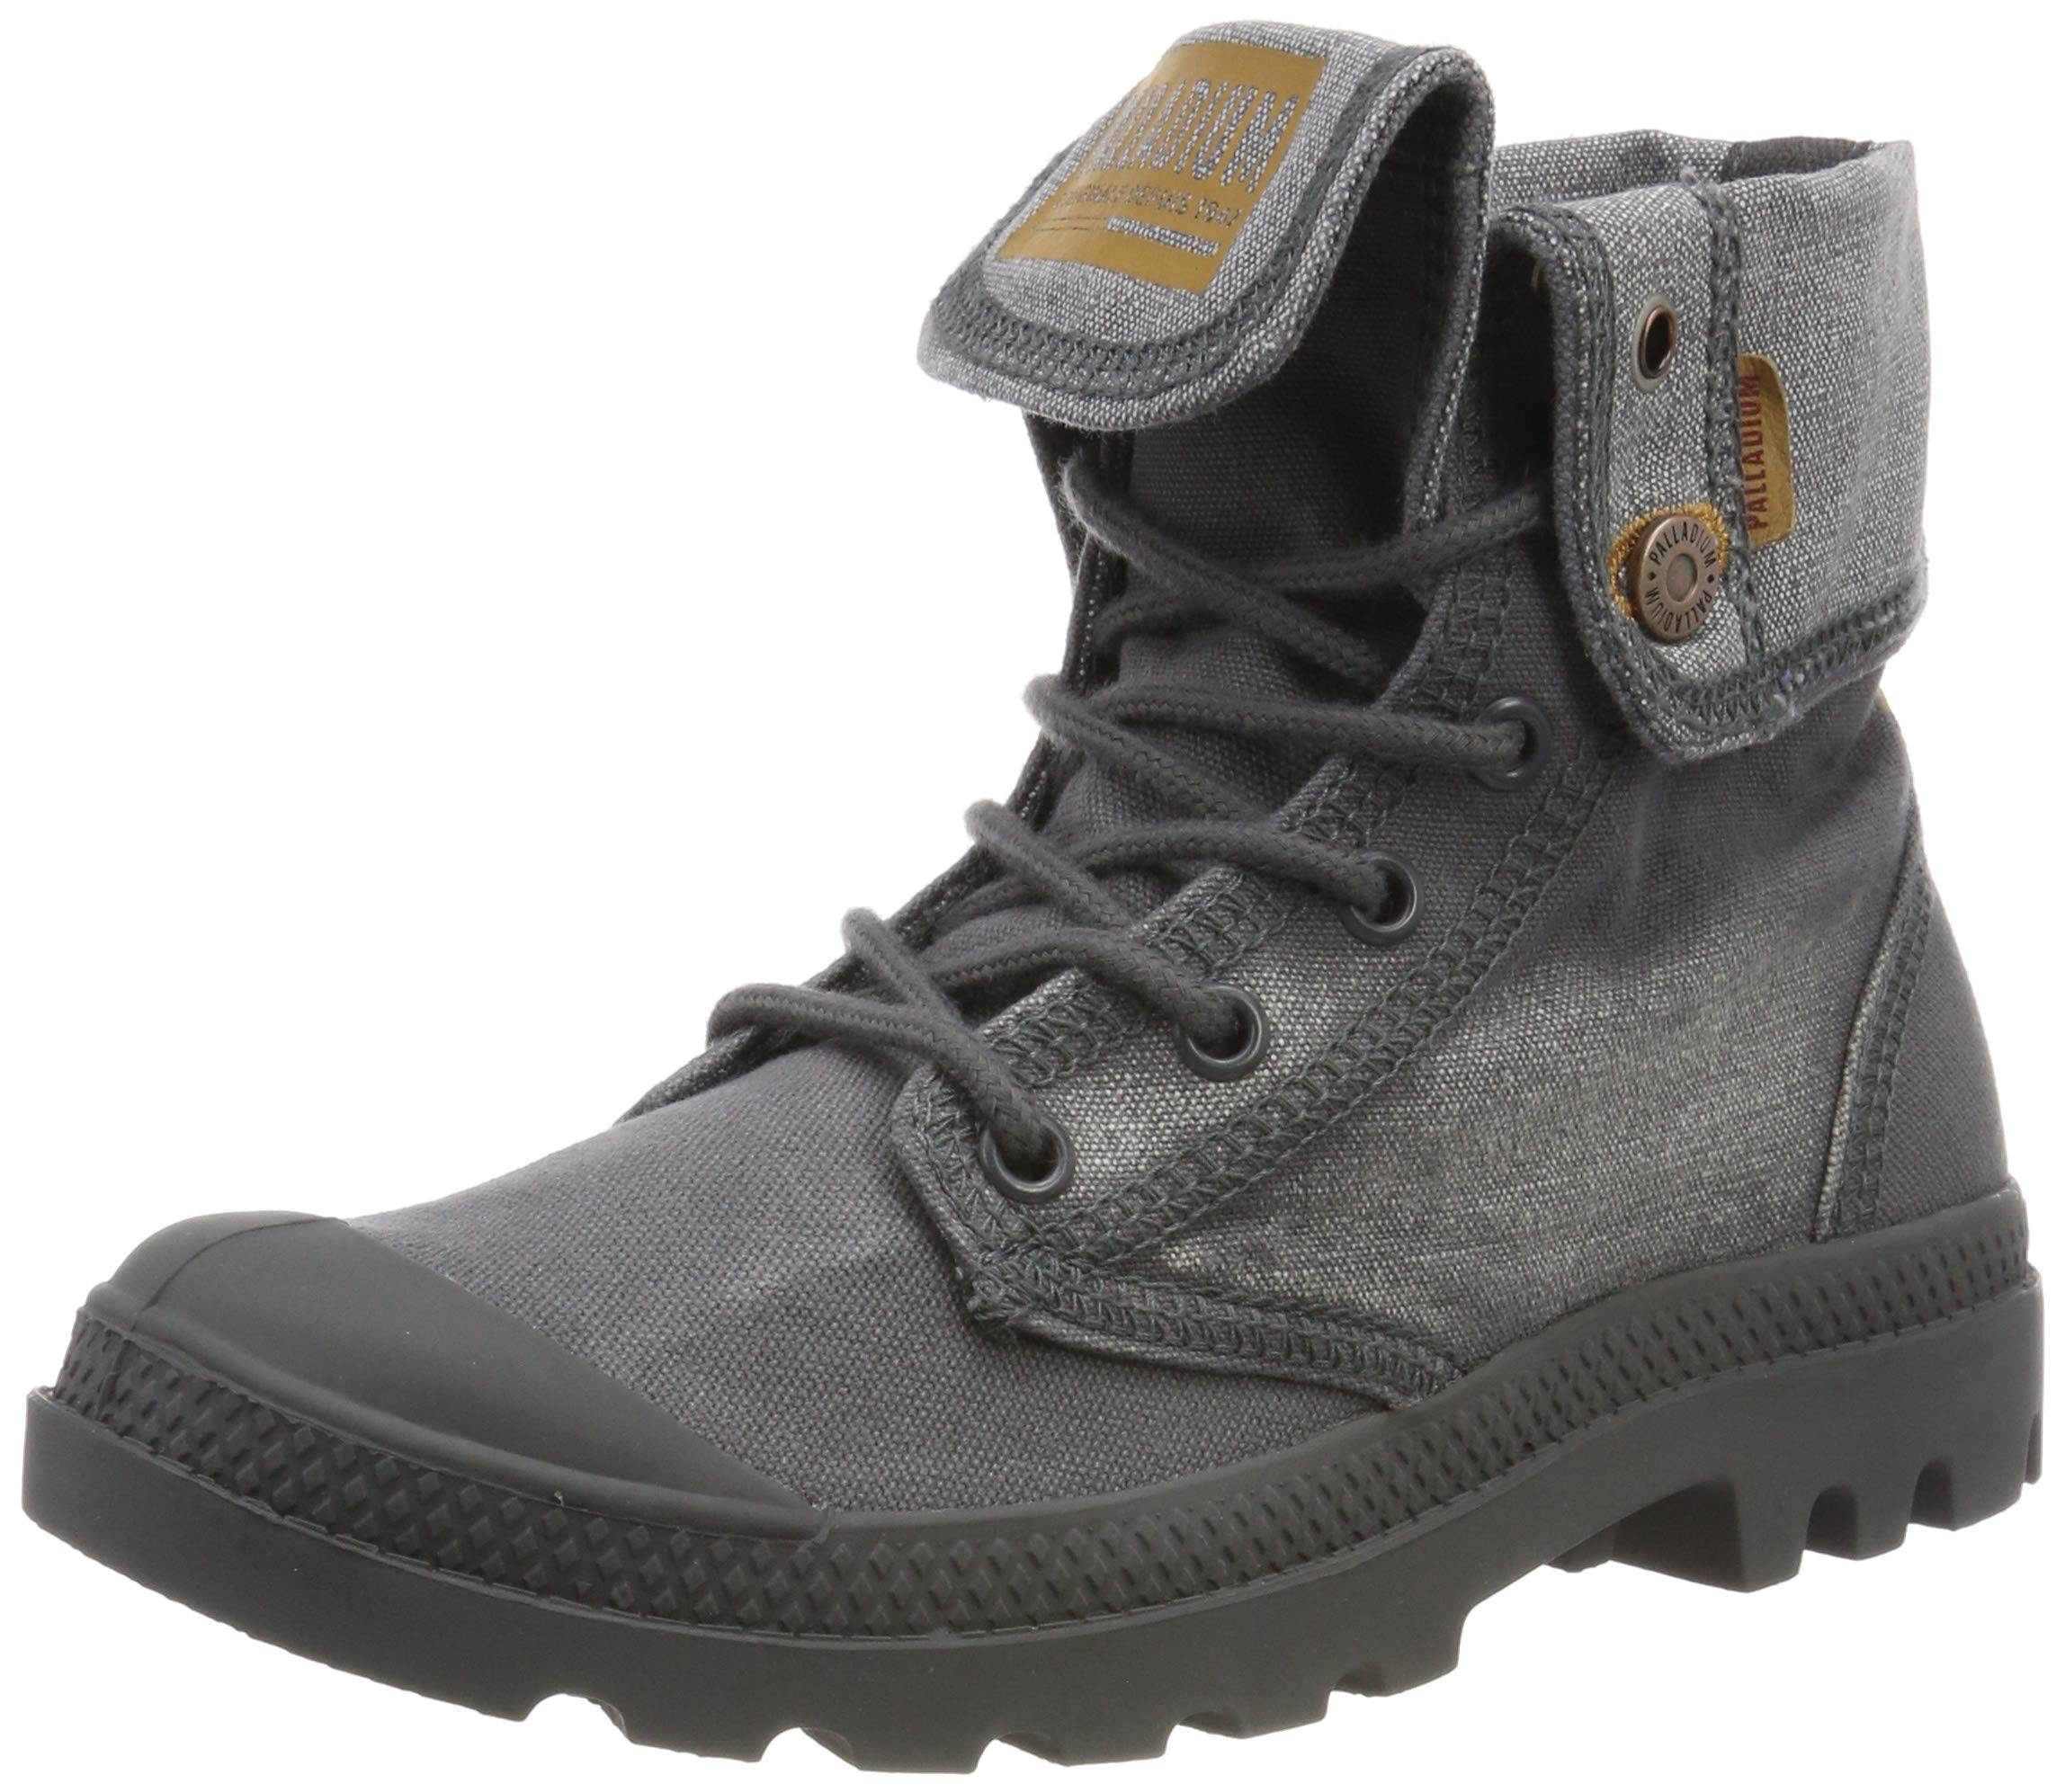 Souples BaggyBottesamp; J3738 Mixte Iron Palladenim Eu Bottines Palladium AdulteGrisforged 0k8nOwP